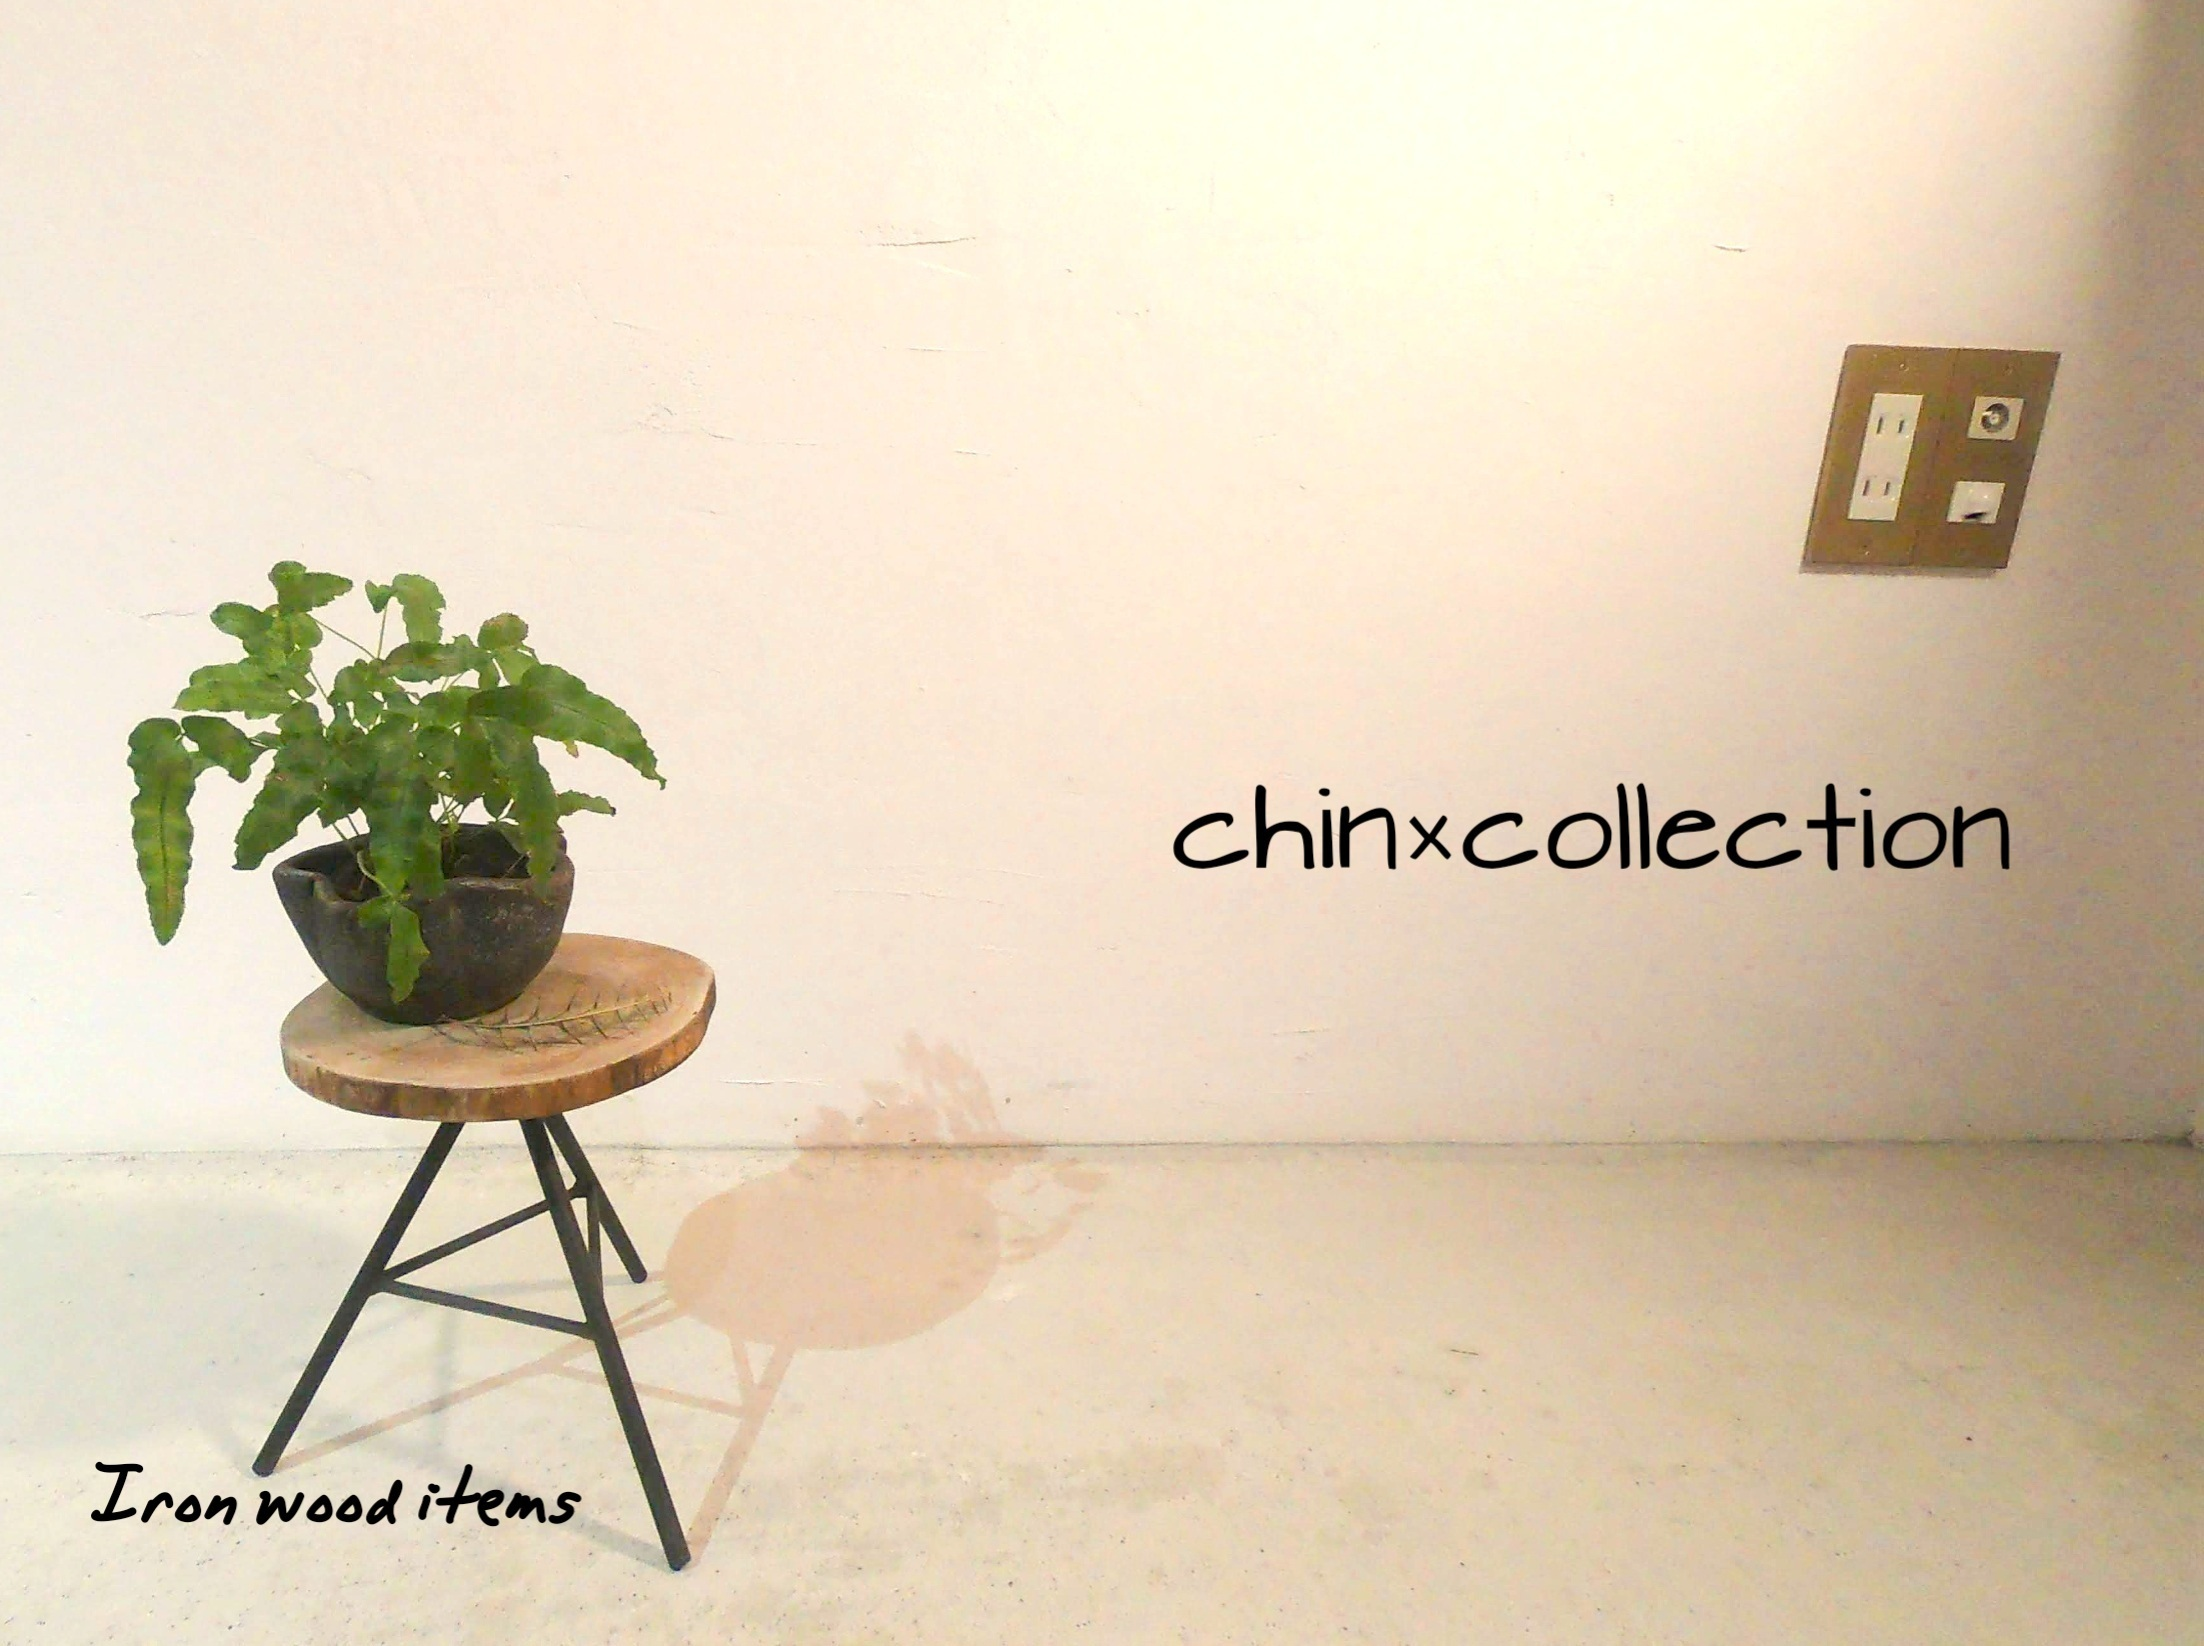 chin×collection